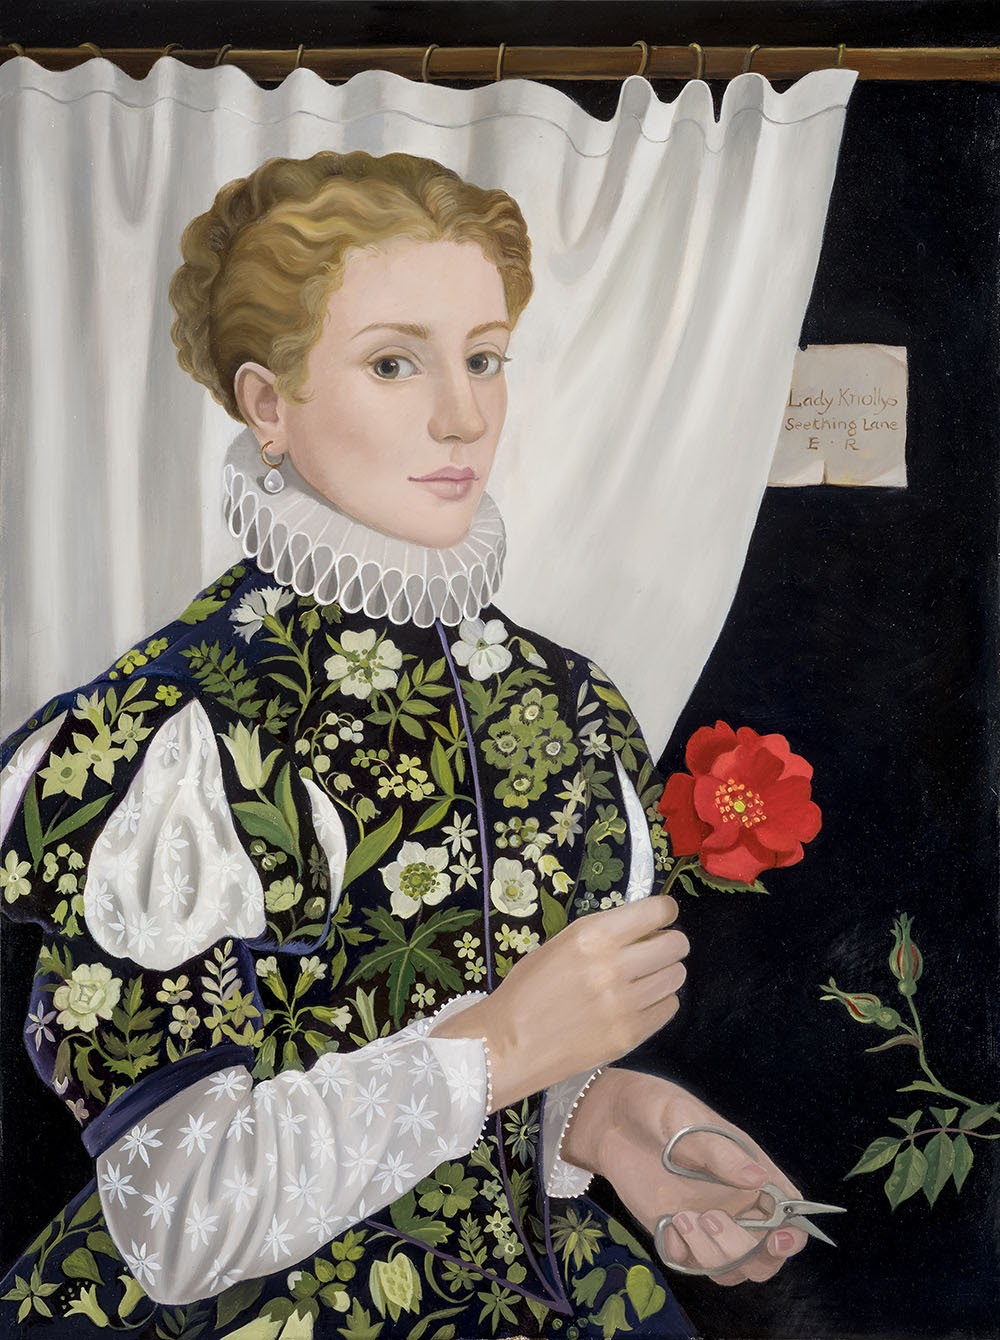 Lizzie Riches The rose of seething lane